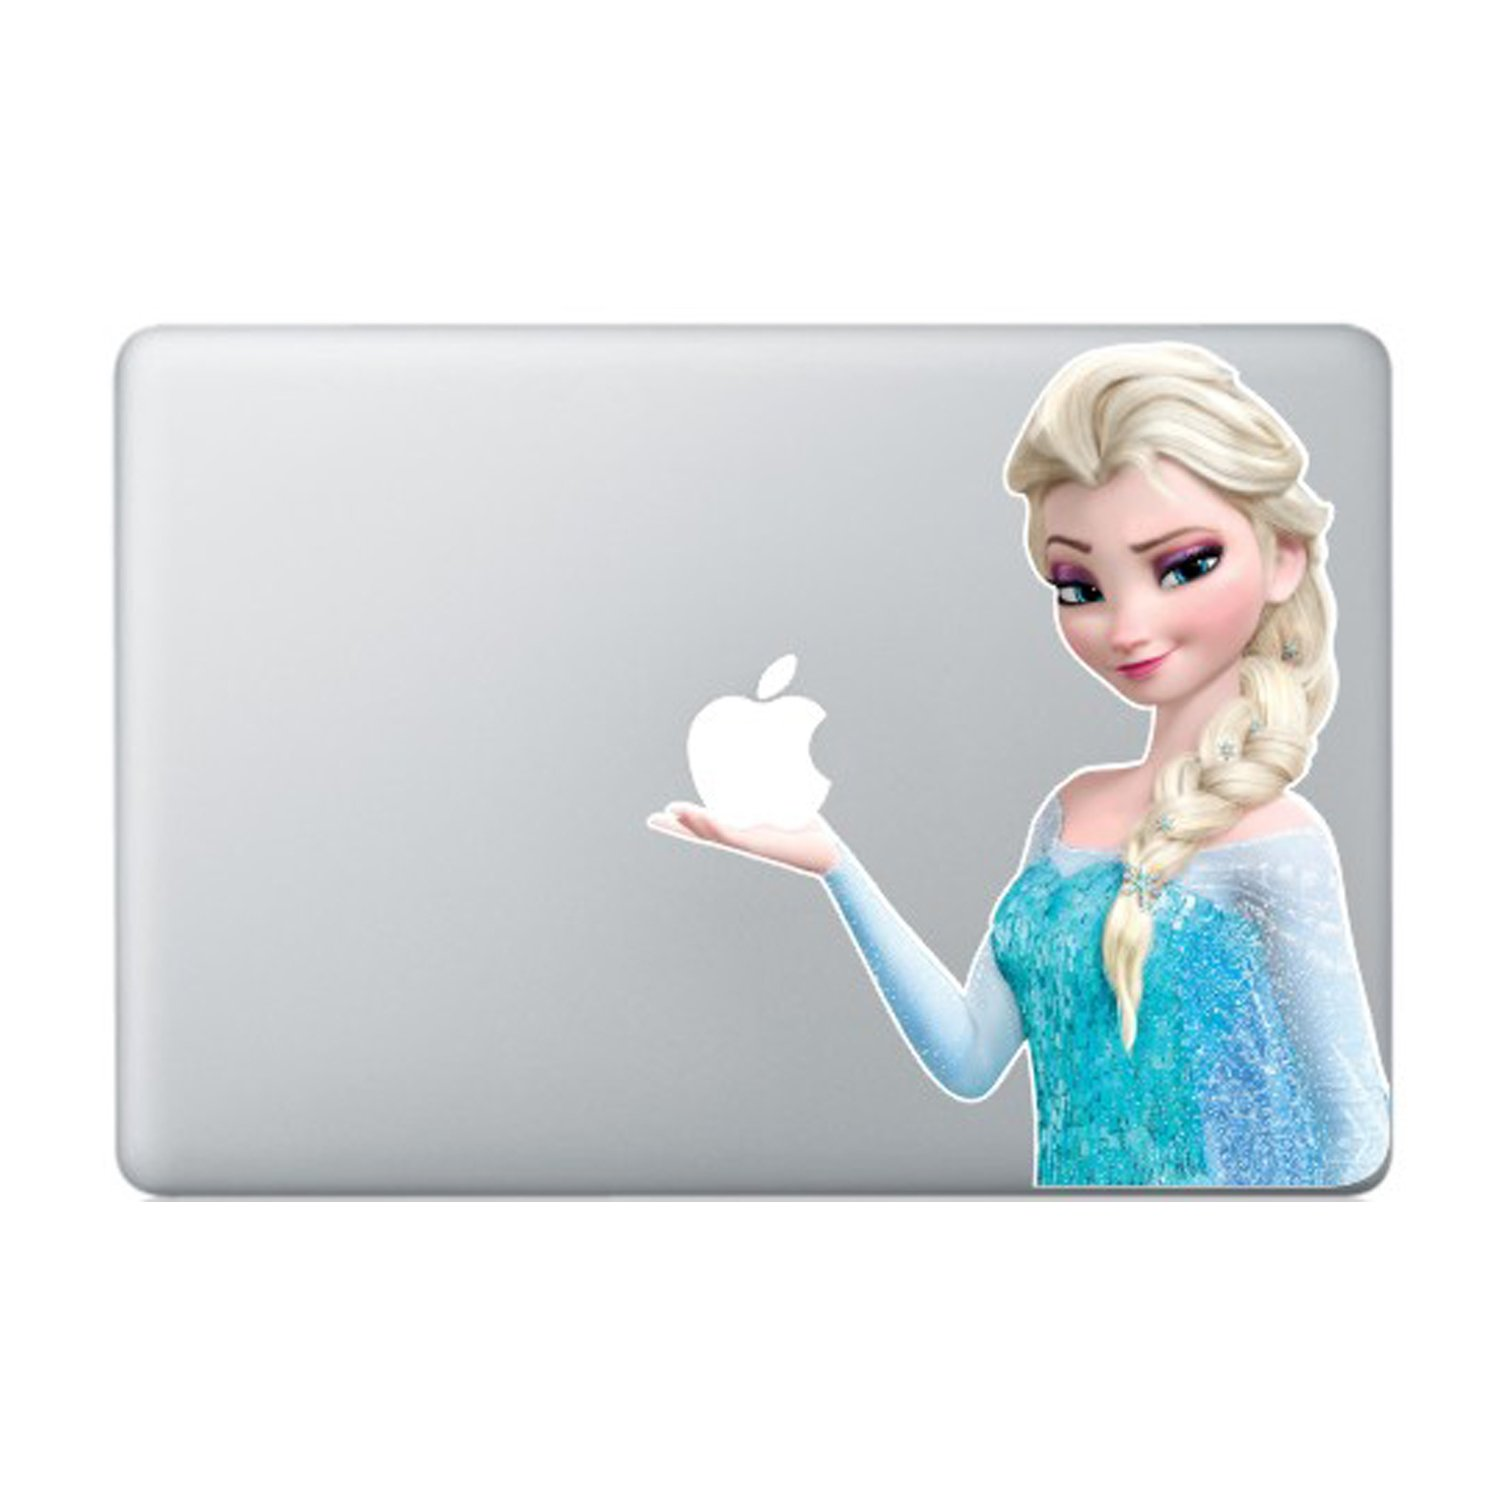 Elsa Frozen Princess Disney Movie Macbook Stickers Decal For Laptop Computer Wall Removable 3D Vinyl Pro Skin 13 inch